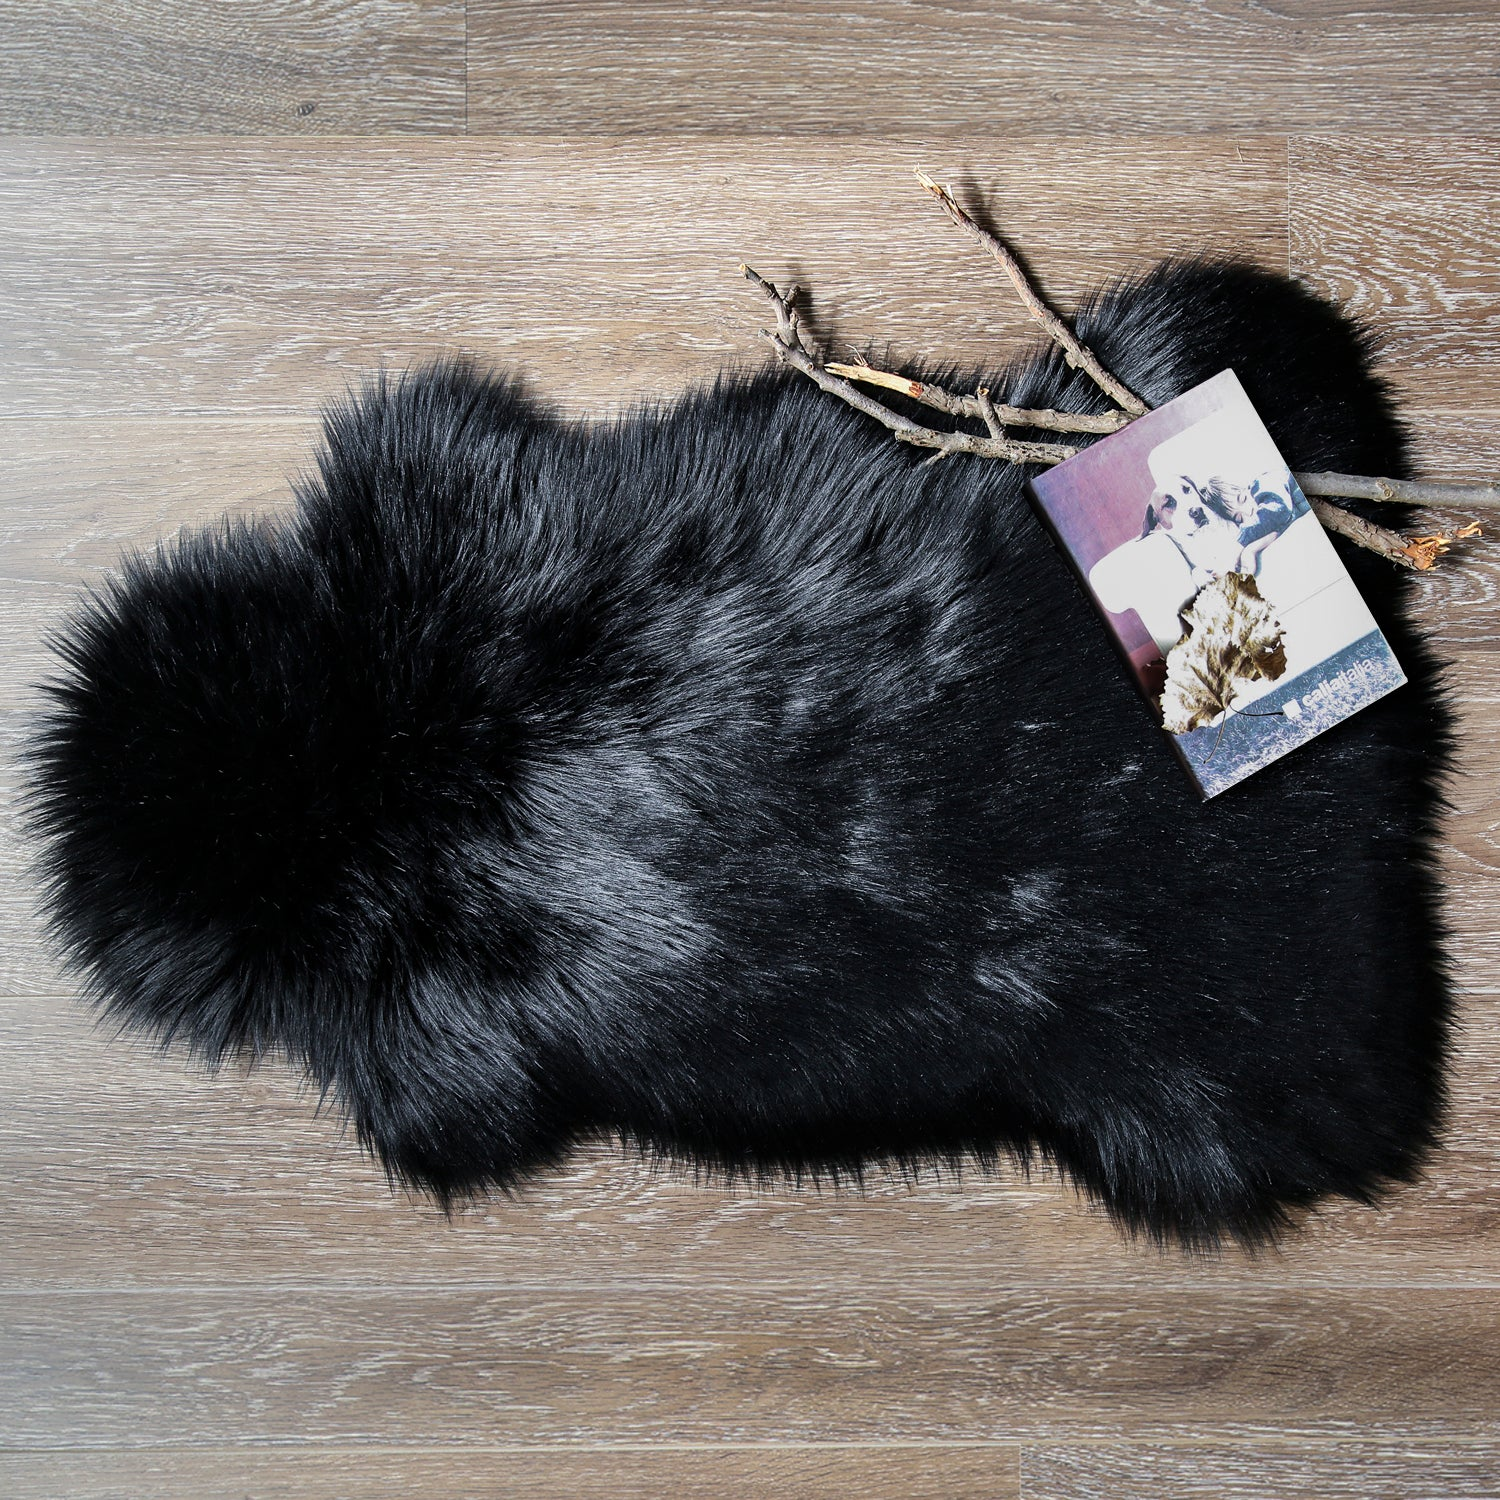 Superb Black Soft Faux Sheepskin Fur Chair Couch Cover Area Rug Caraccident5 Cool Chair Designs And Ideas Caraccident5Info